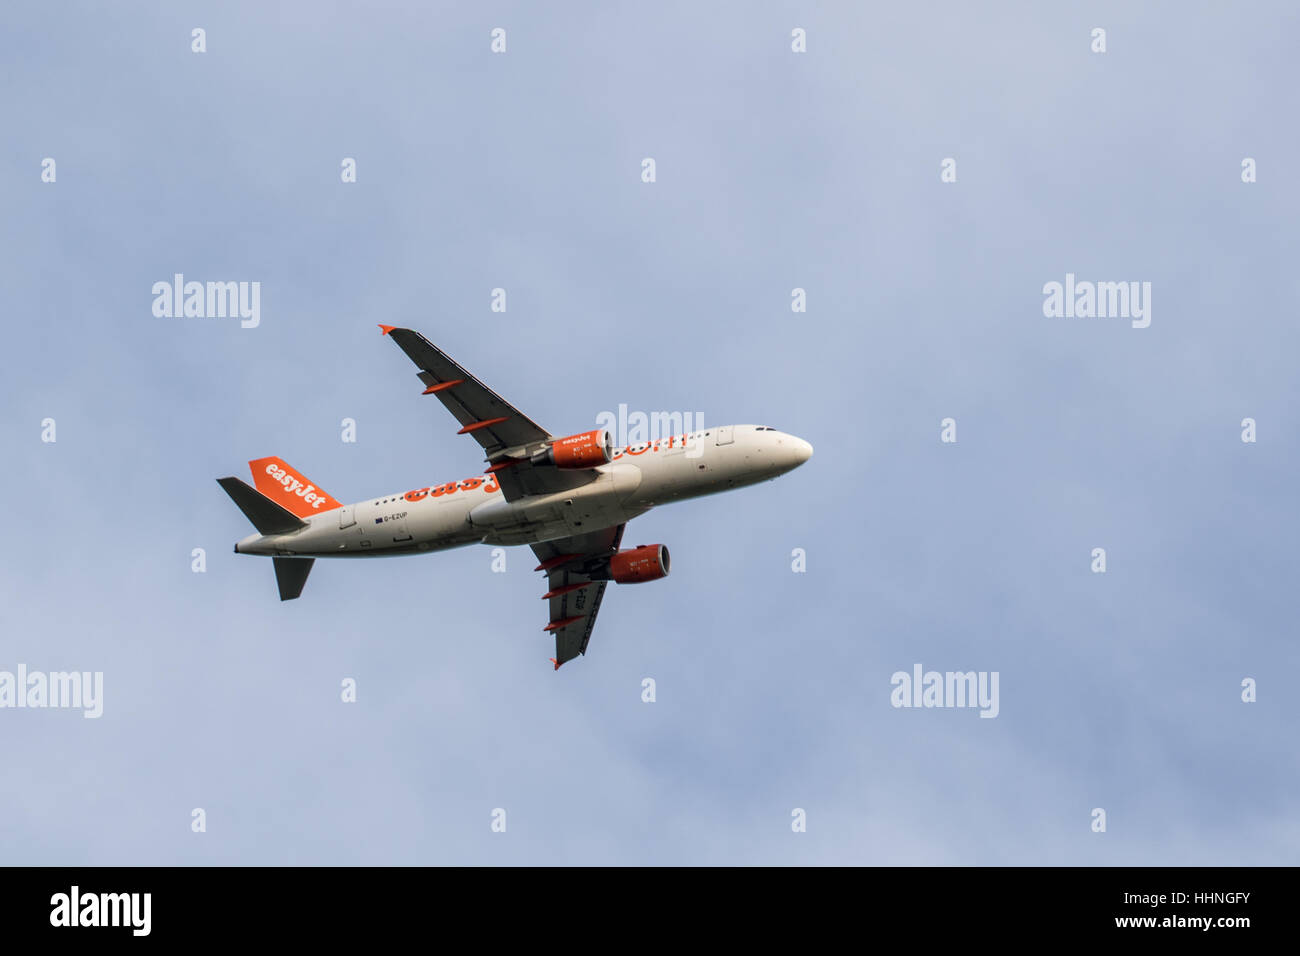 Easyjet Airbus g-ezup A320-214 in air near Gatwick - Stock Image